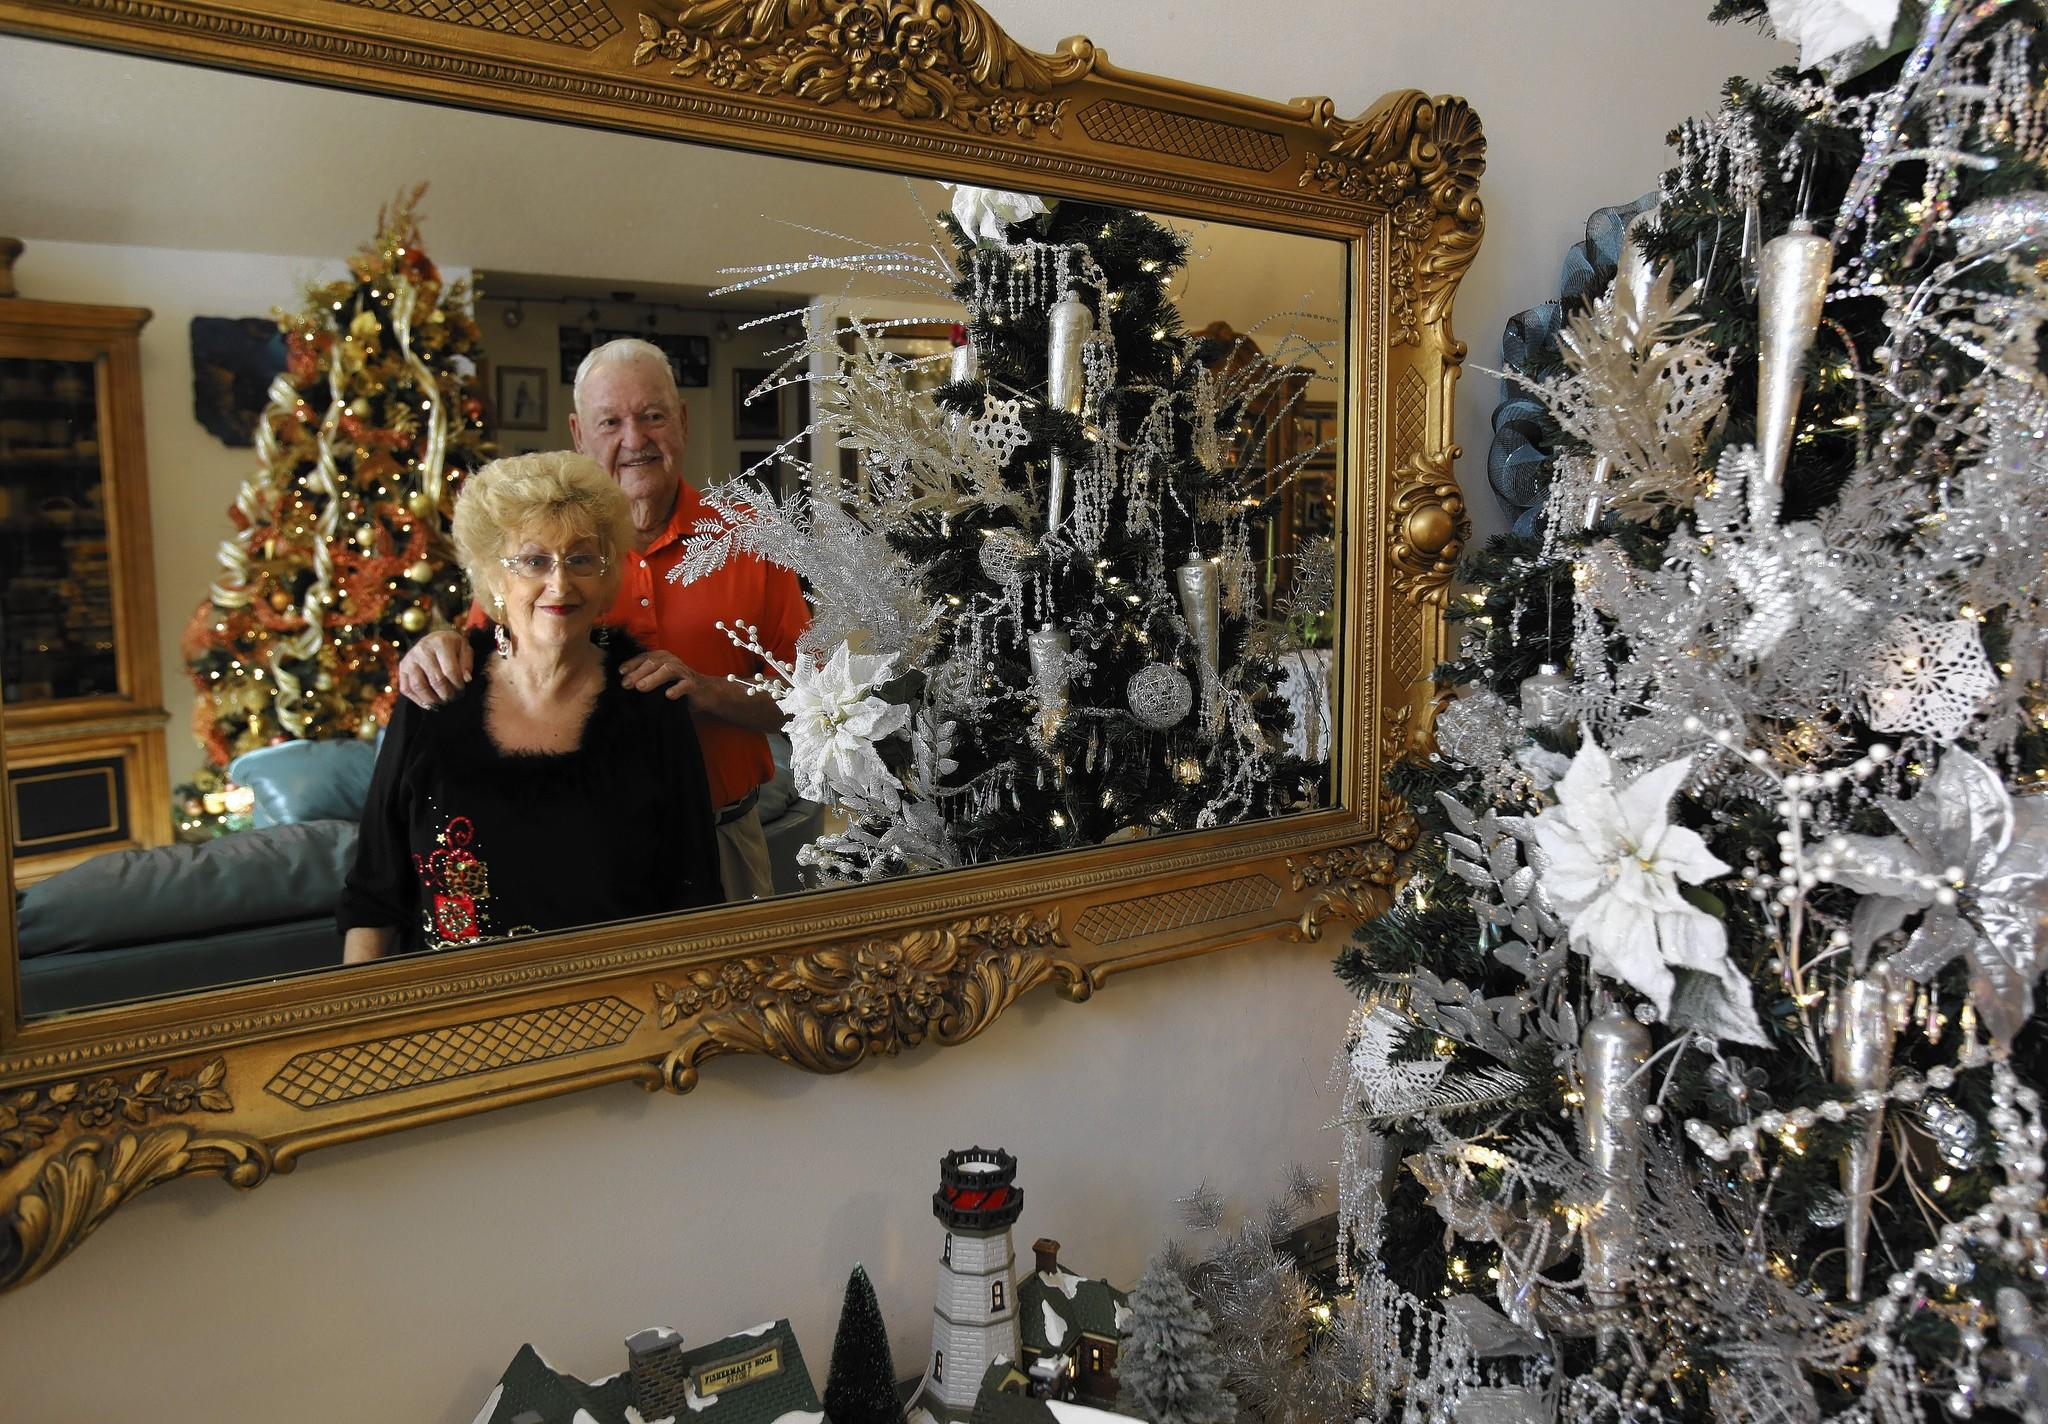 Art and Sharon Womble decorate their home with 40 7-foot Christmas trees every year. Art Womble helped start the Light Up Mount Dora event in 1986, when he worked for the city.